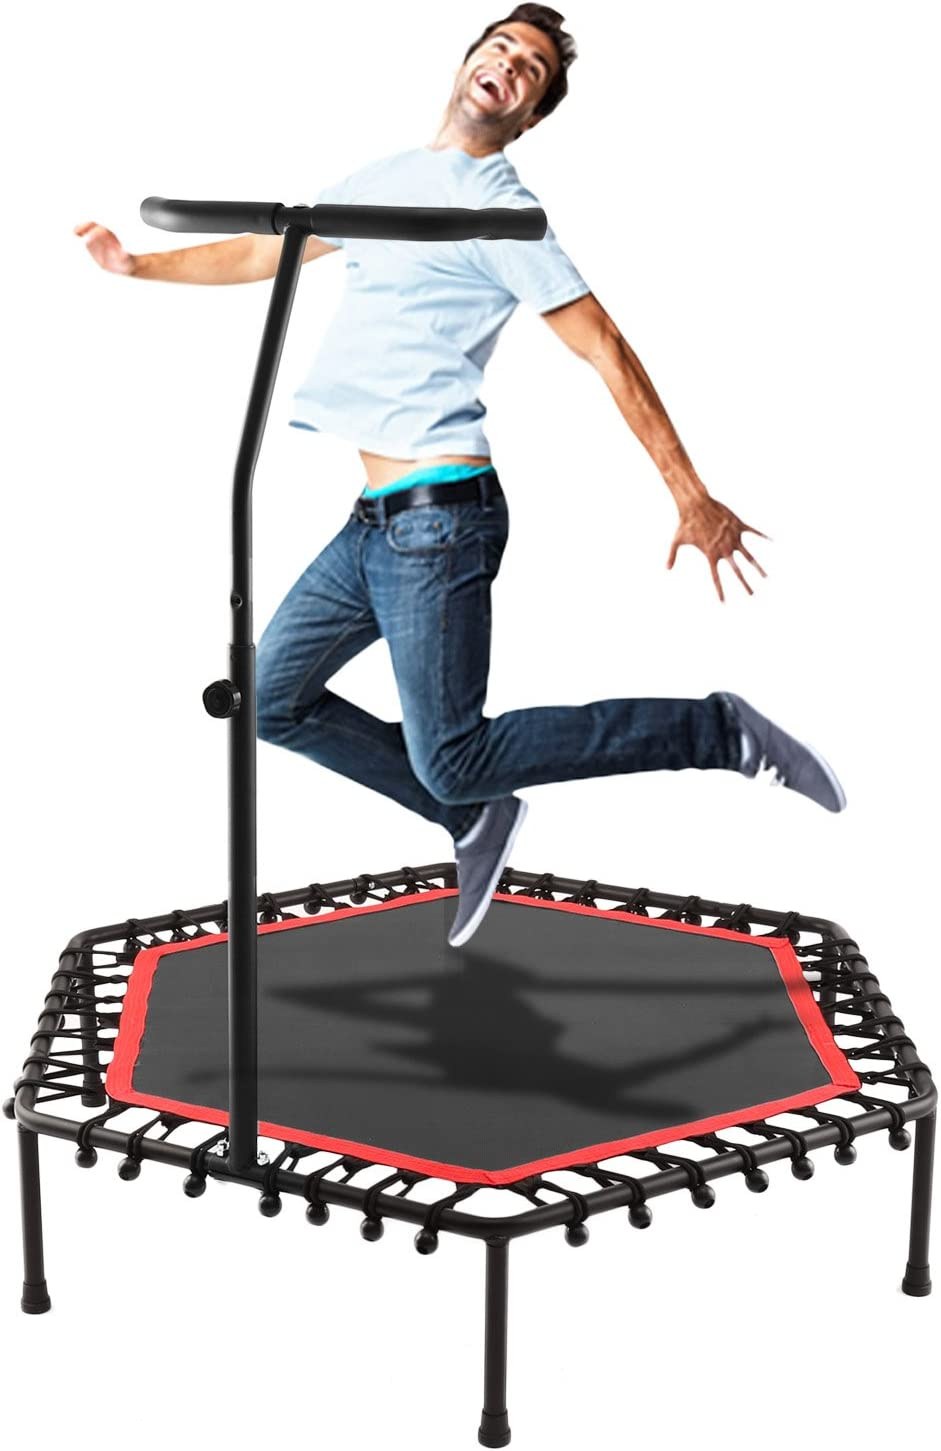 Scallop Foldable Fitness Trampoline Adult Kids Mini Rebounder Trampoline with adjustable Handrail for Indoor Outdoor Exercise Jumper UK Stock